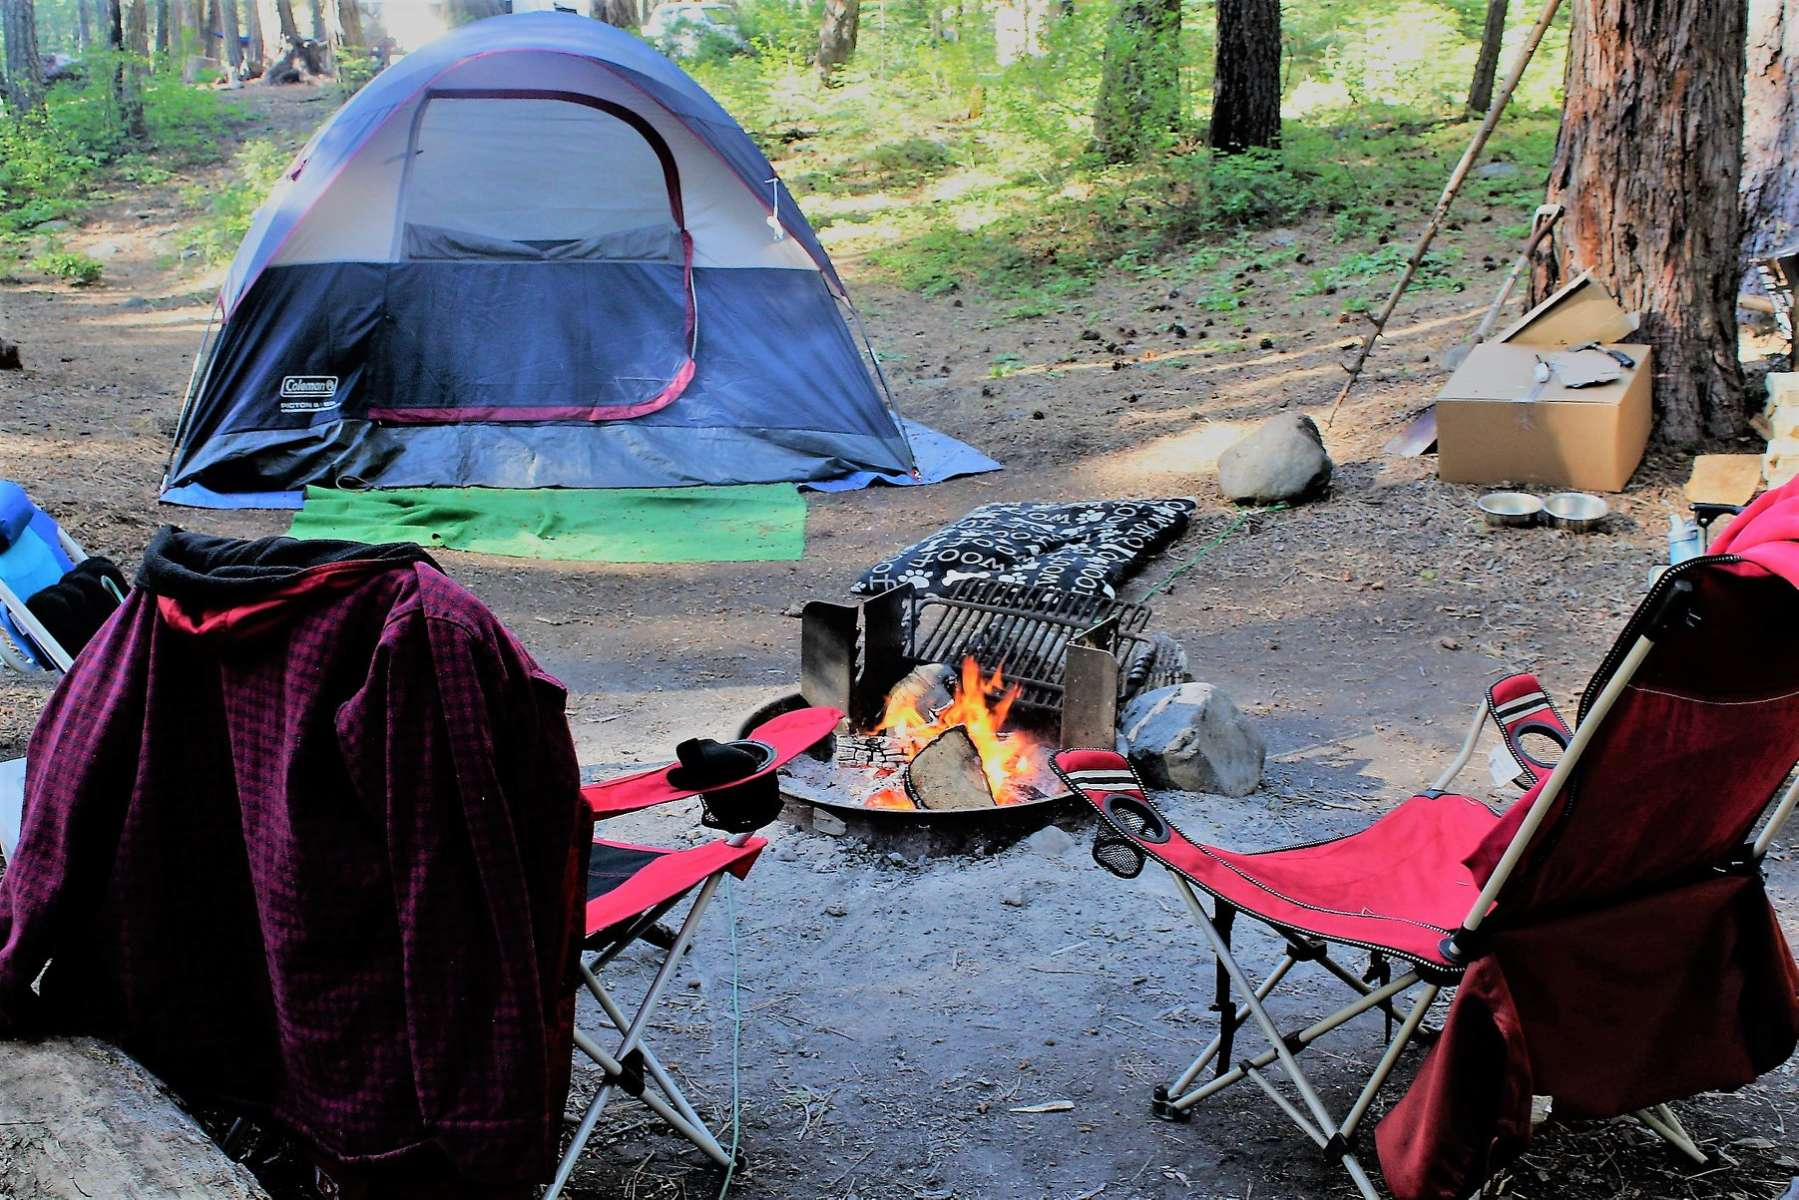 North Fork Campground, Tahoe, CA: 4 Hipcamper Reviews And 7 Photos